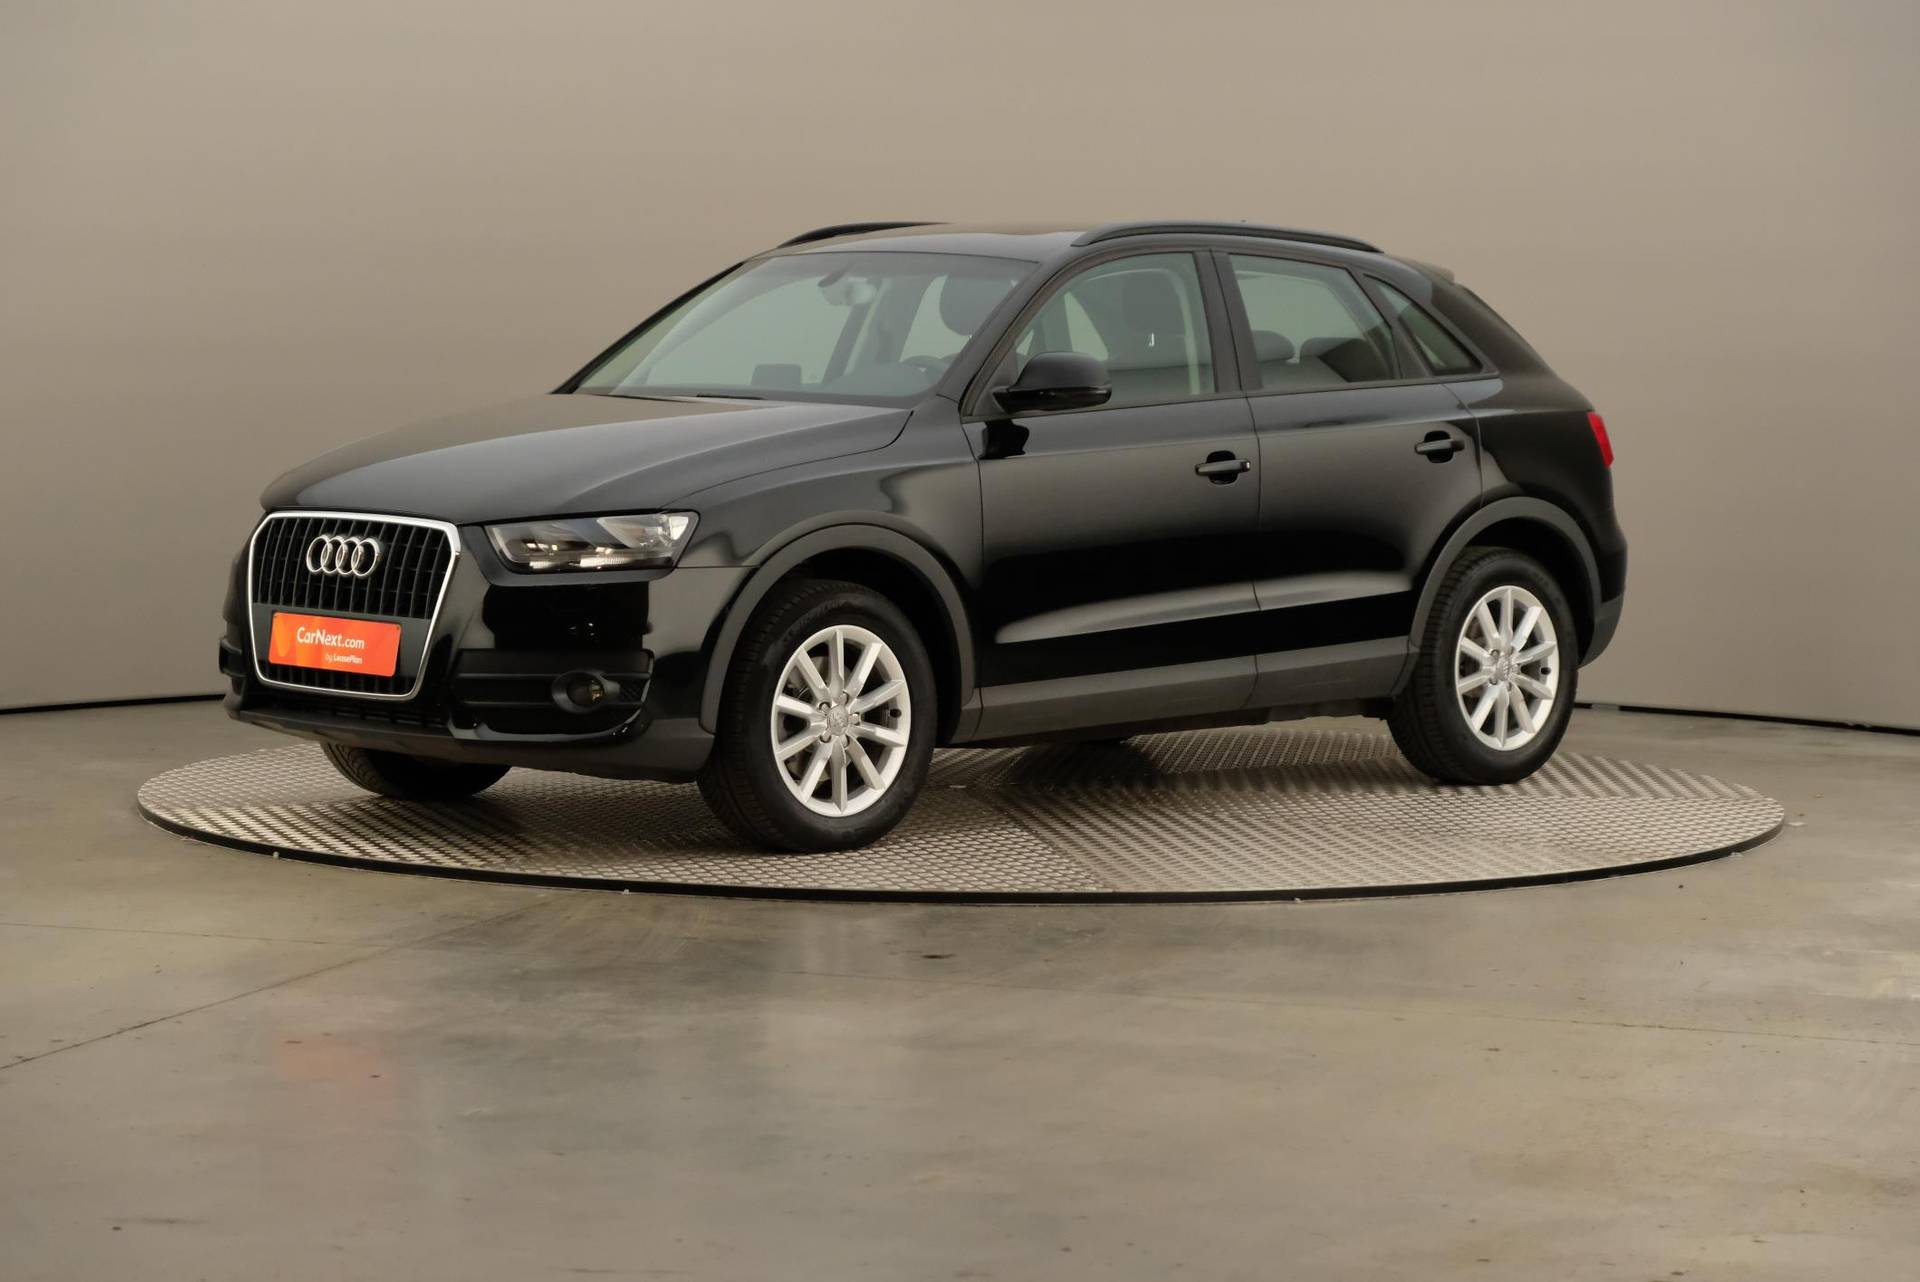 Audi Q3 2.0 TDI Adventure Plus S&S PANO MP3 BT GPS, 360-image0